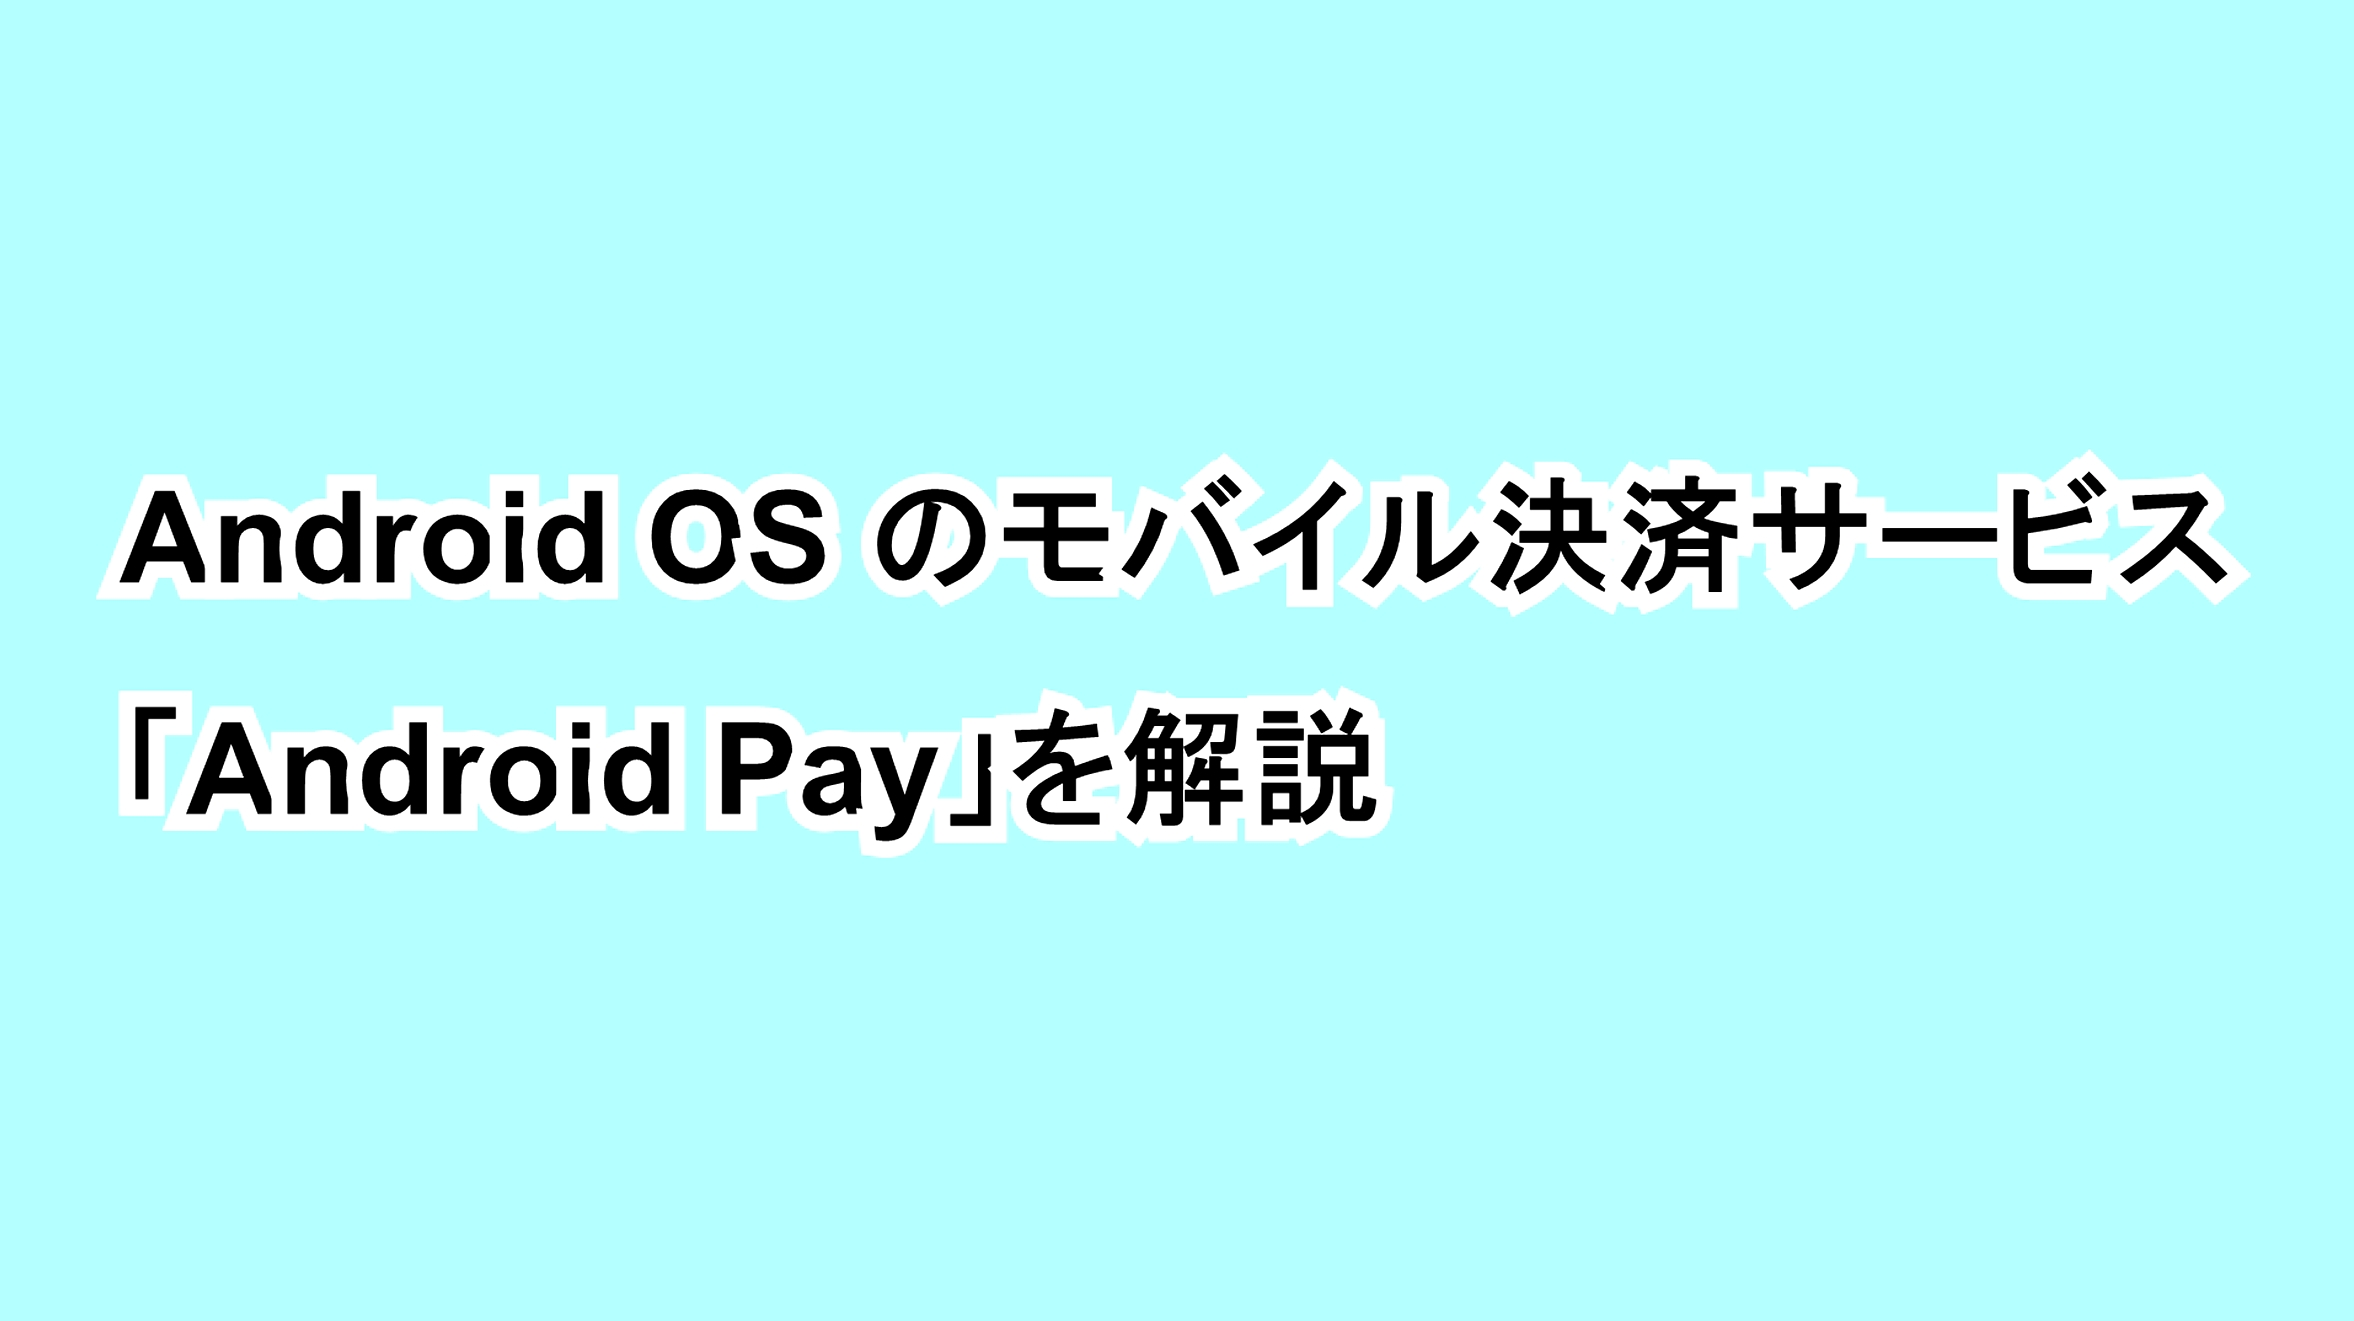 Android OSのモバイル決済サービス「Android Pay」を解説